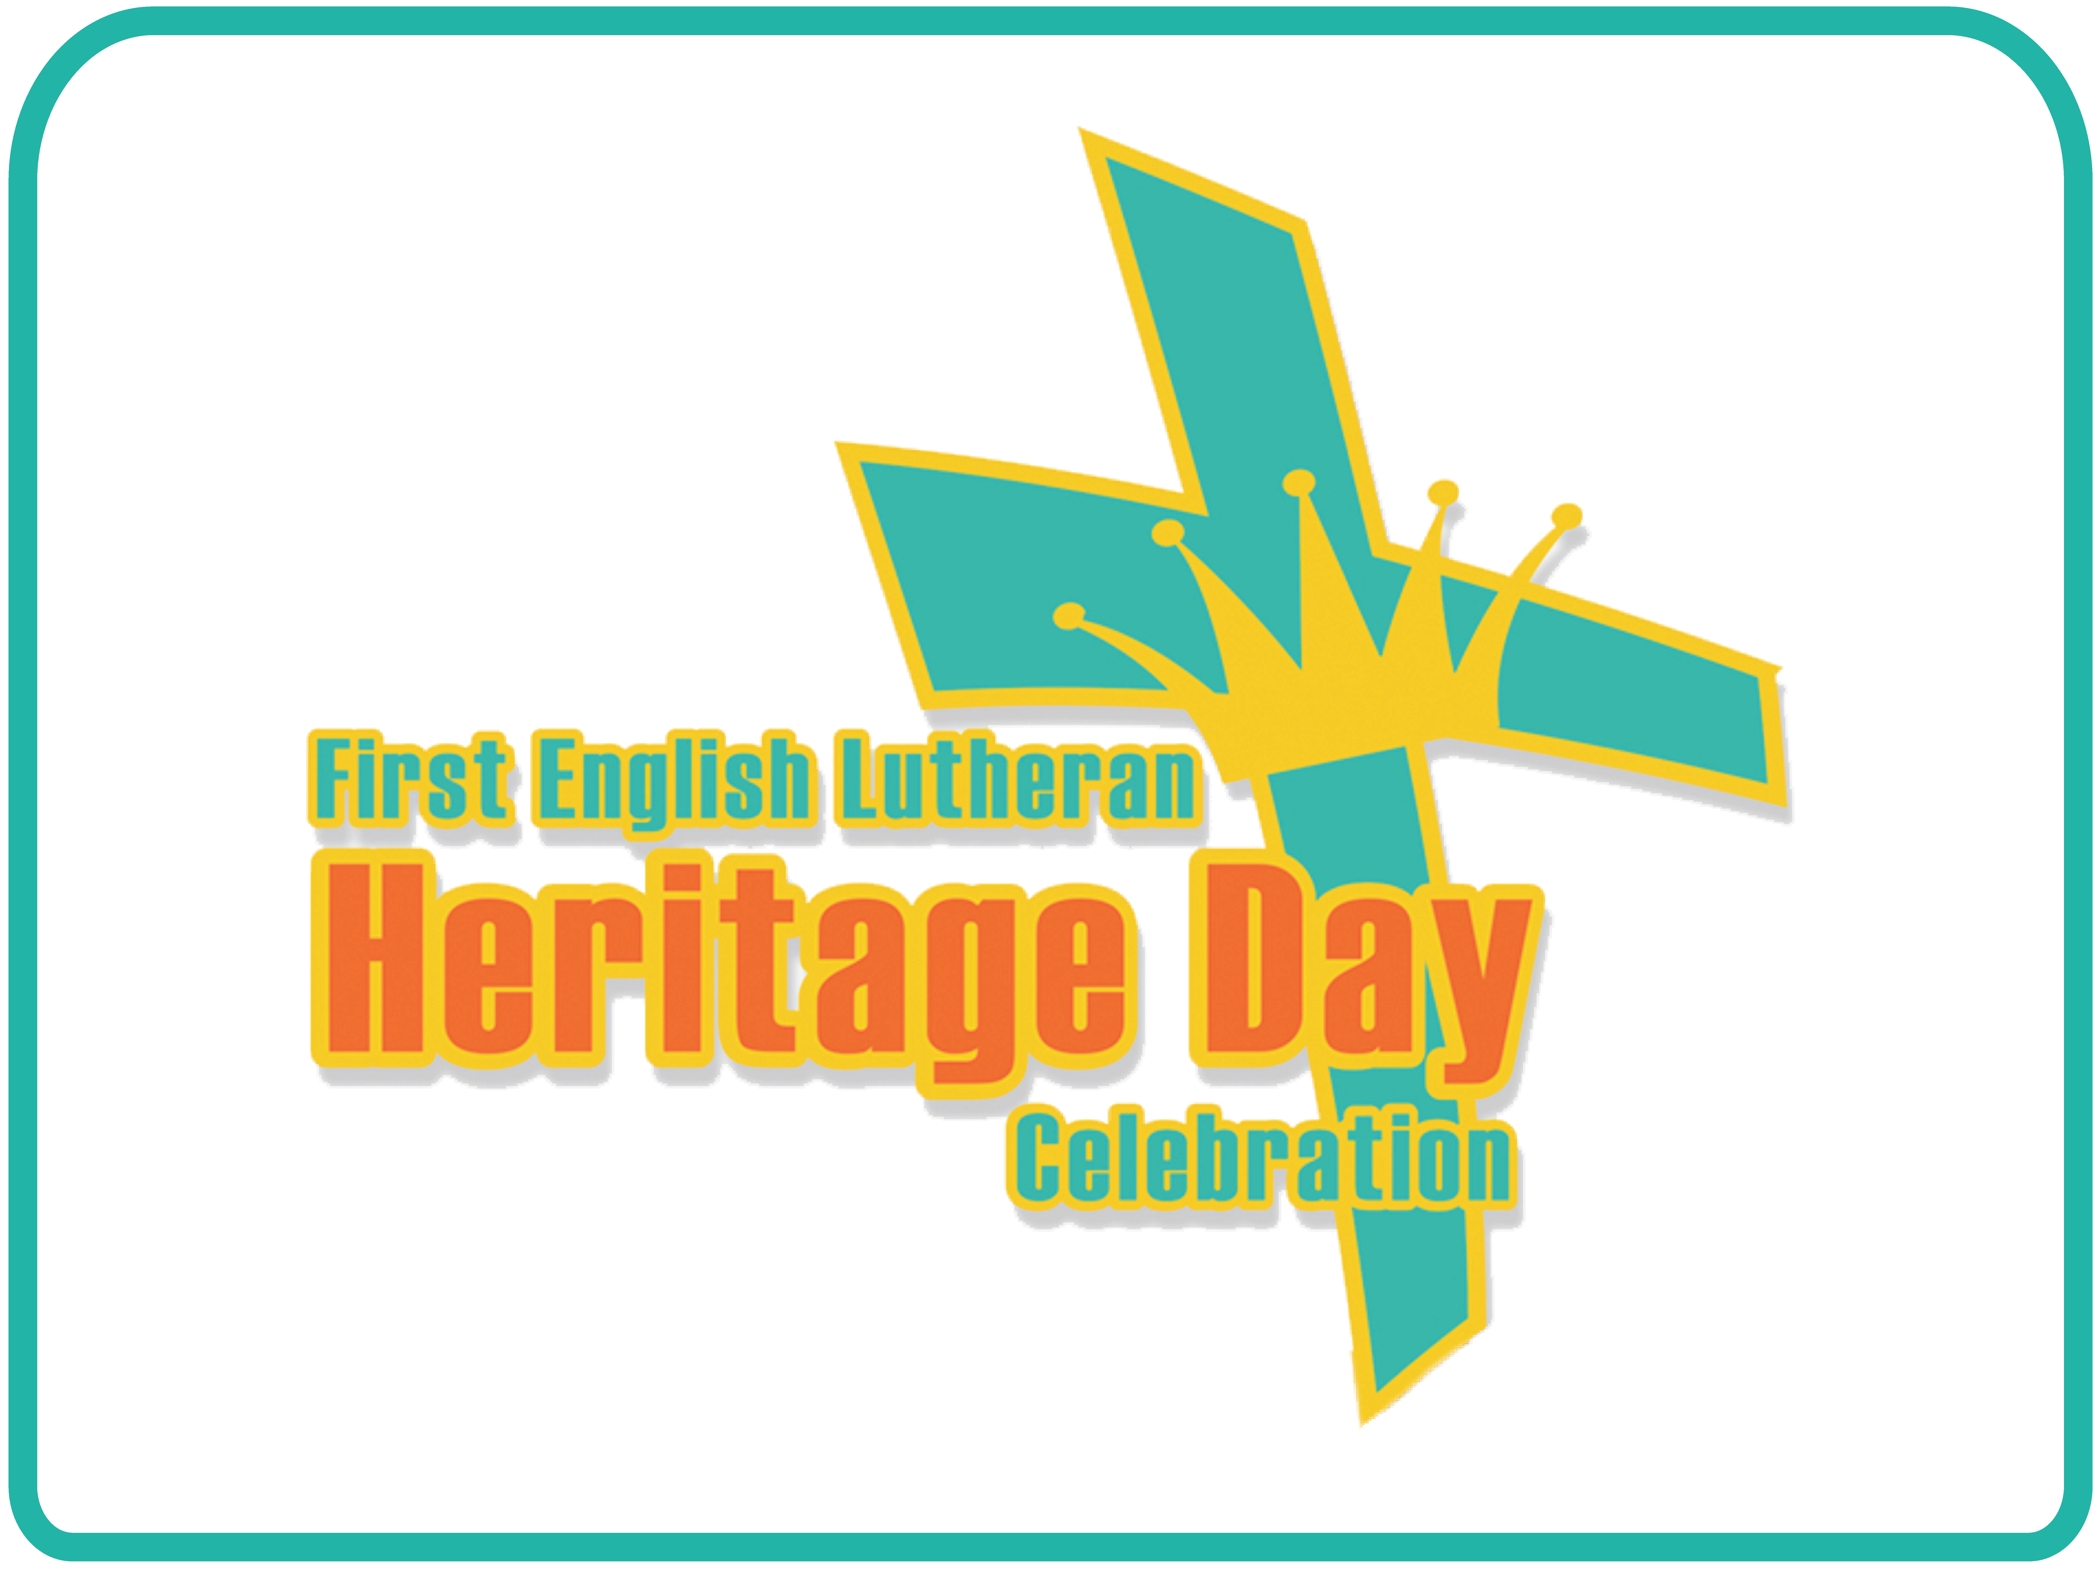 First 20english 20lutheran 20  20heritage 20celebration 202015